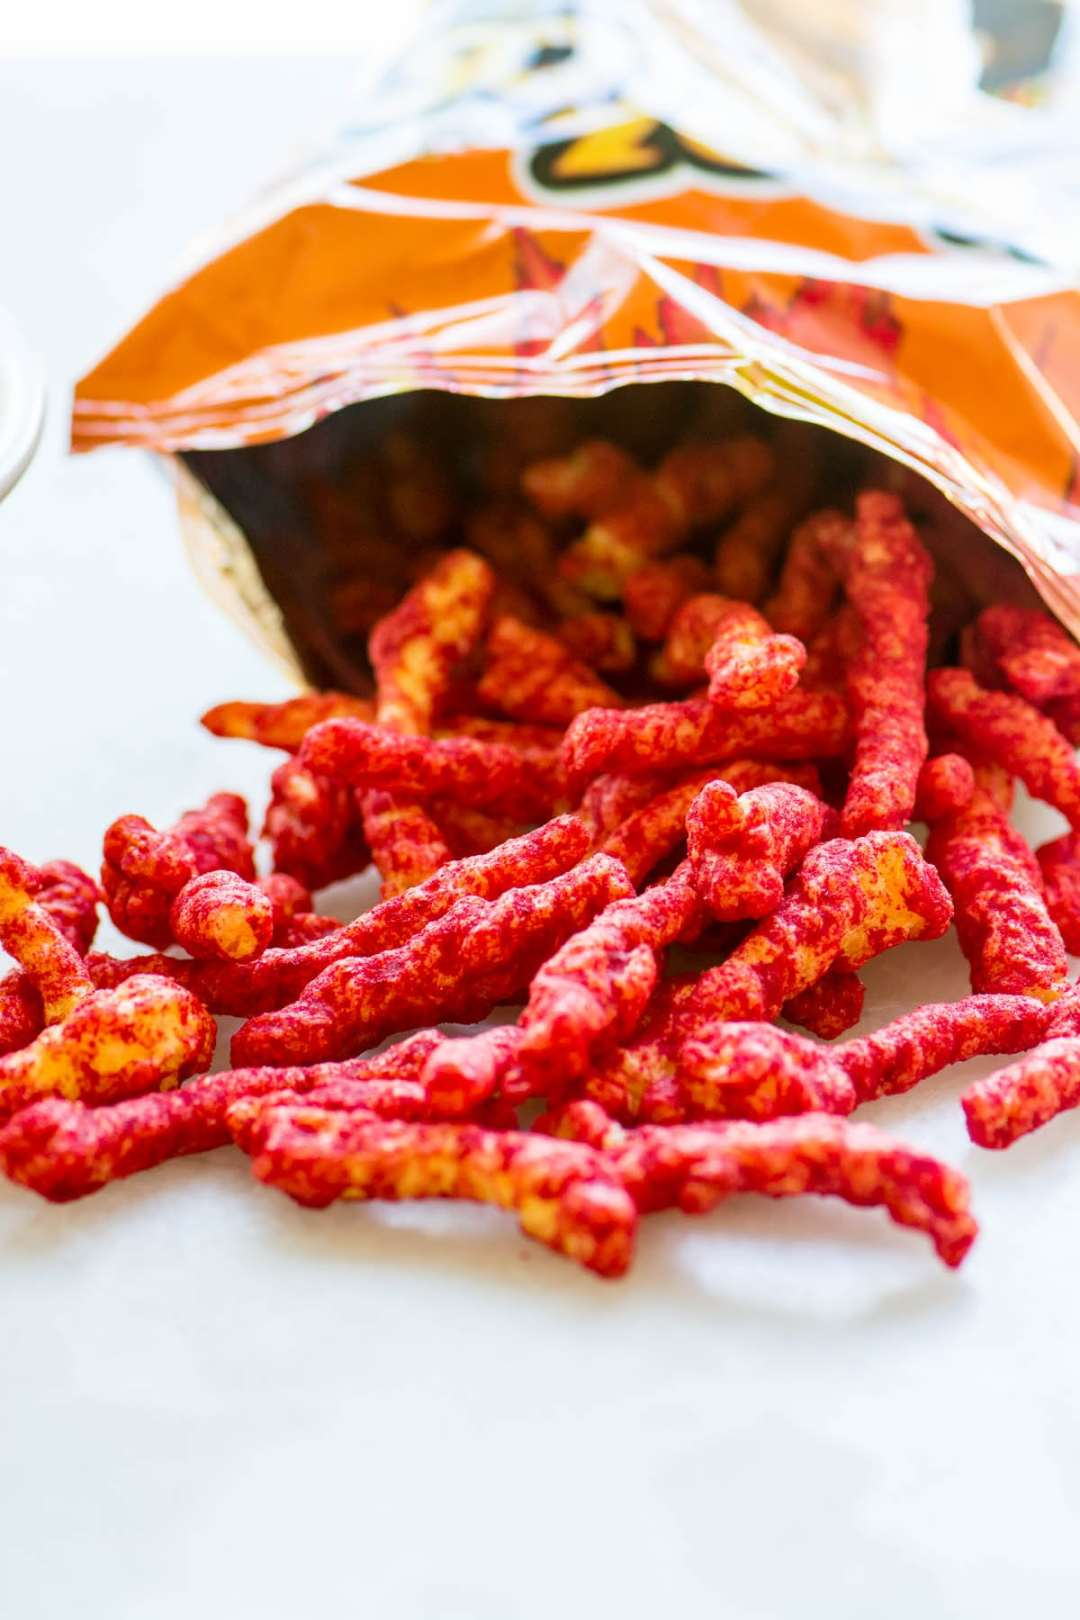 flamin' hot cheetos spilling out of the bag